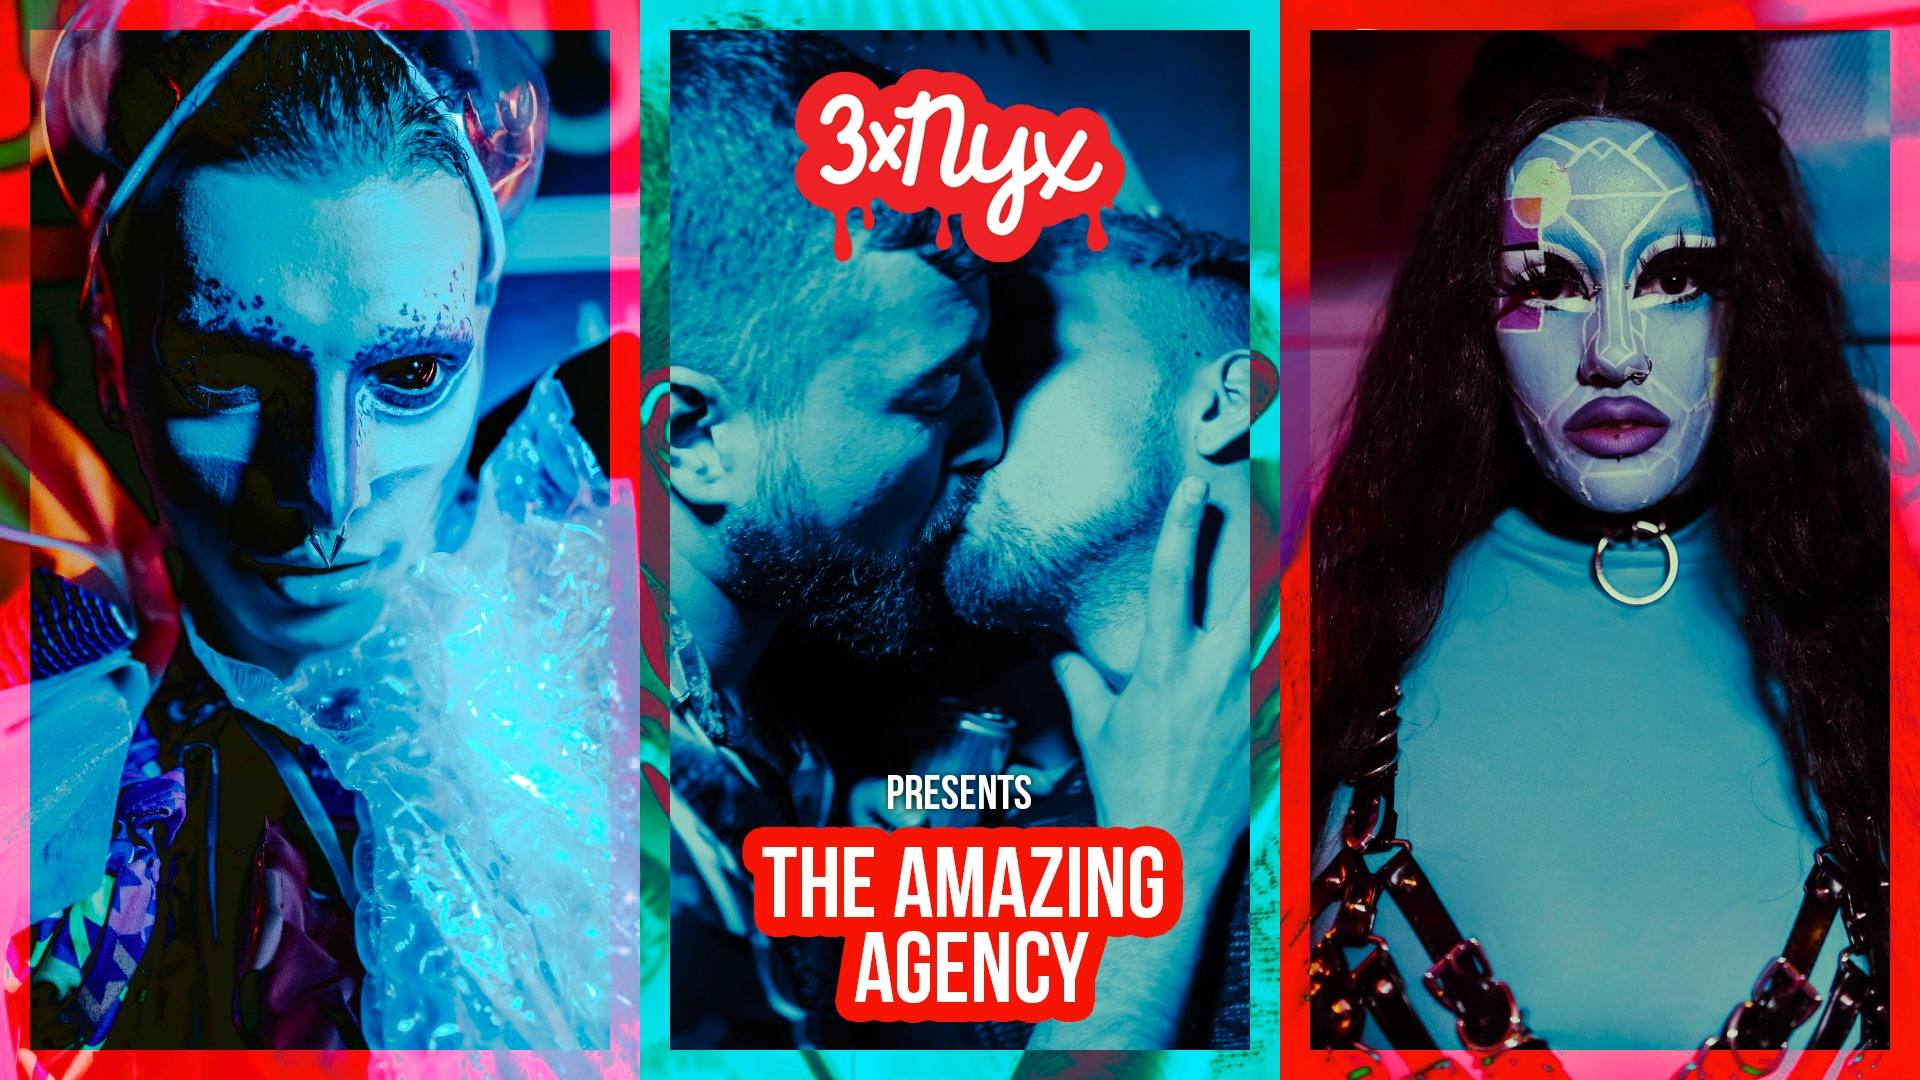 3x NYX presents The Amazing Agency - Queer Dance Party - Club NYX Amsterdam